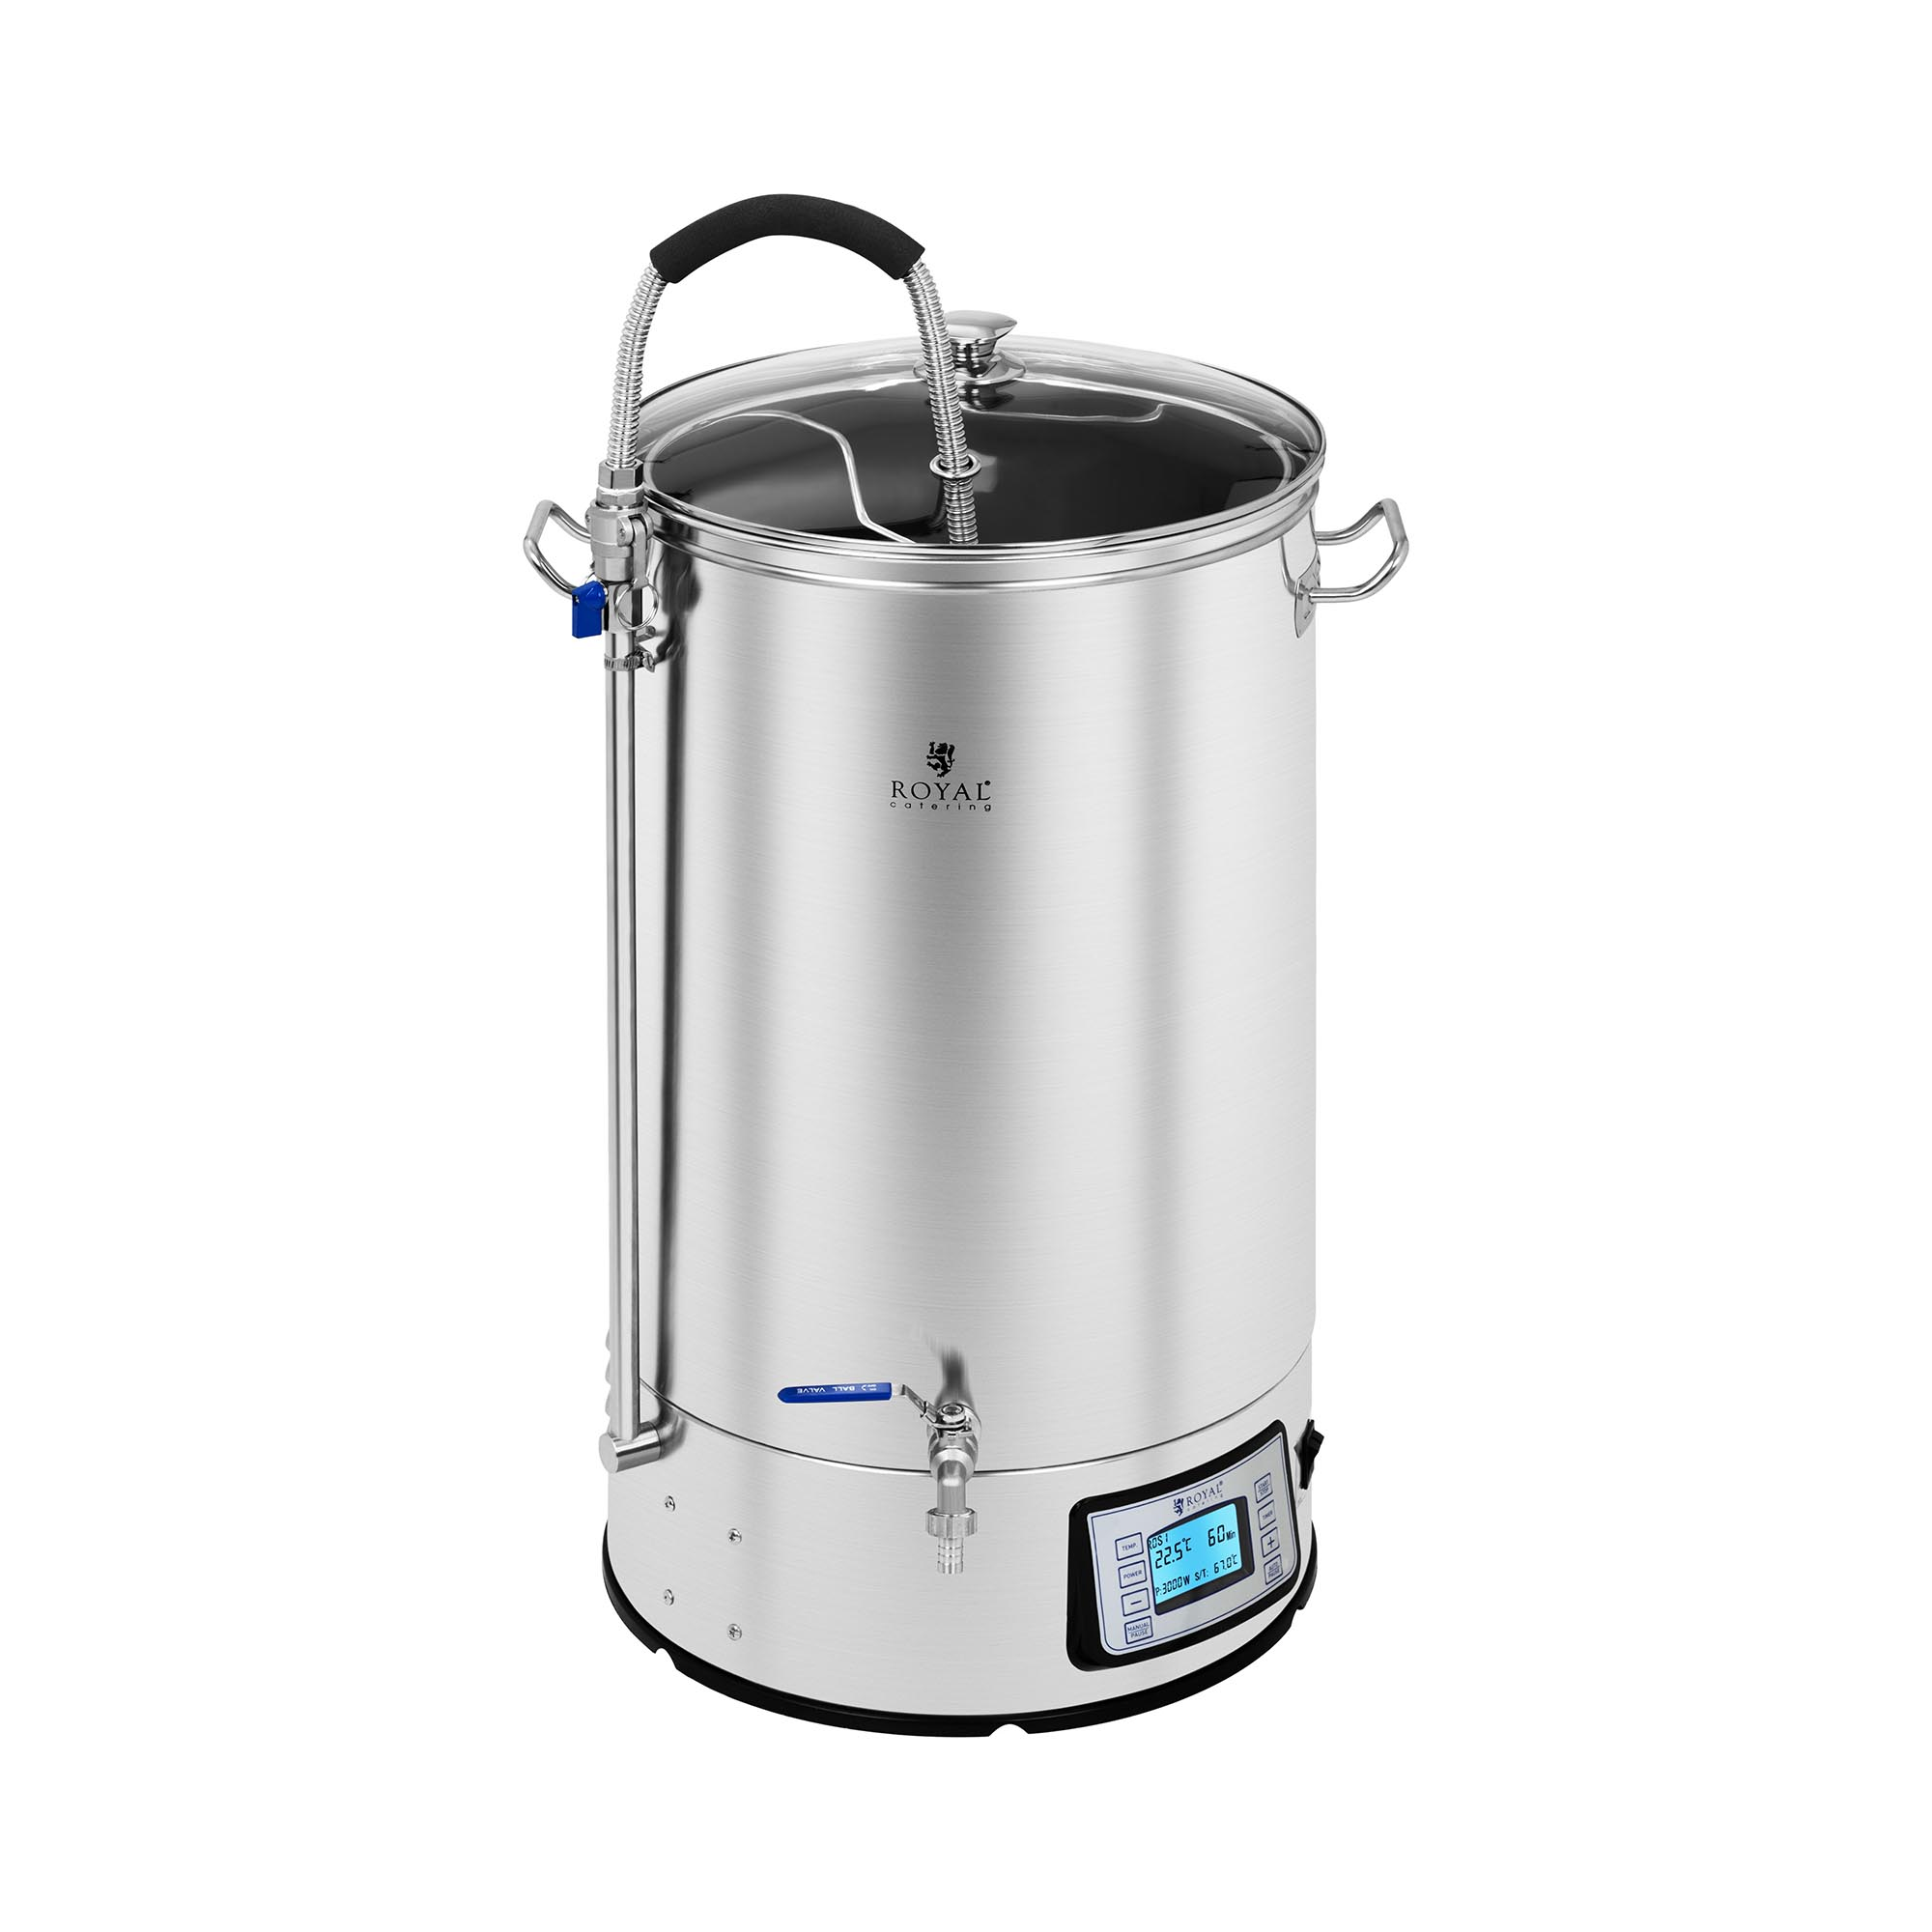 Royal Catering Braukessel - 60 L - 3.000 W 10011524